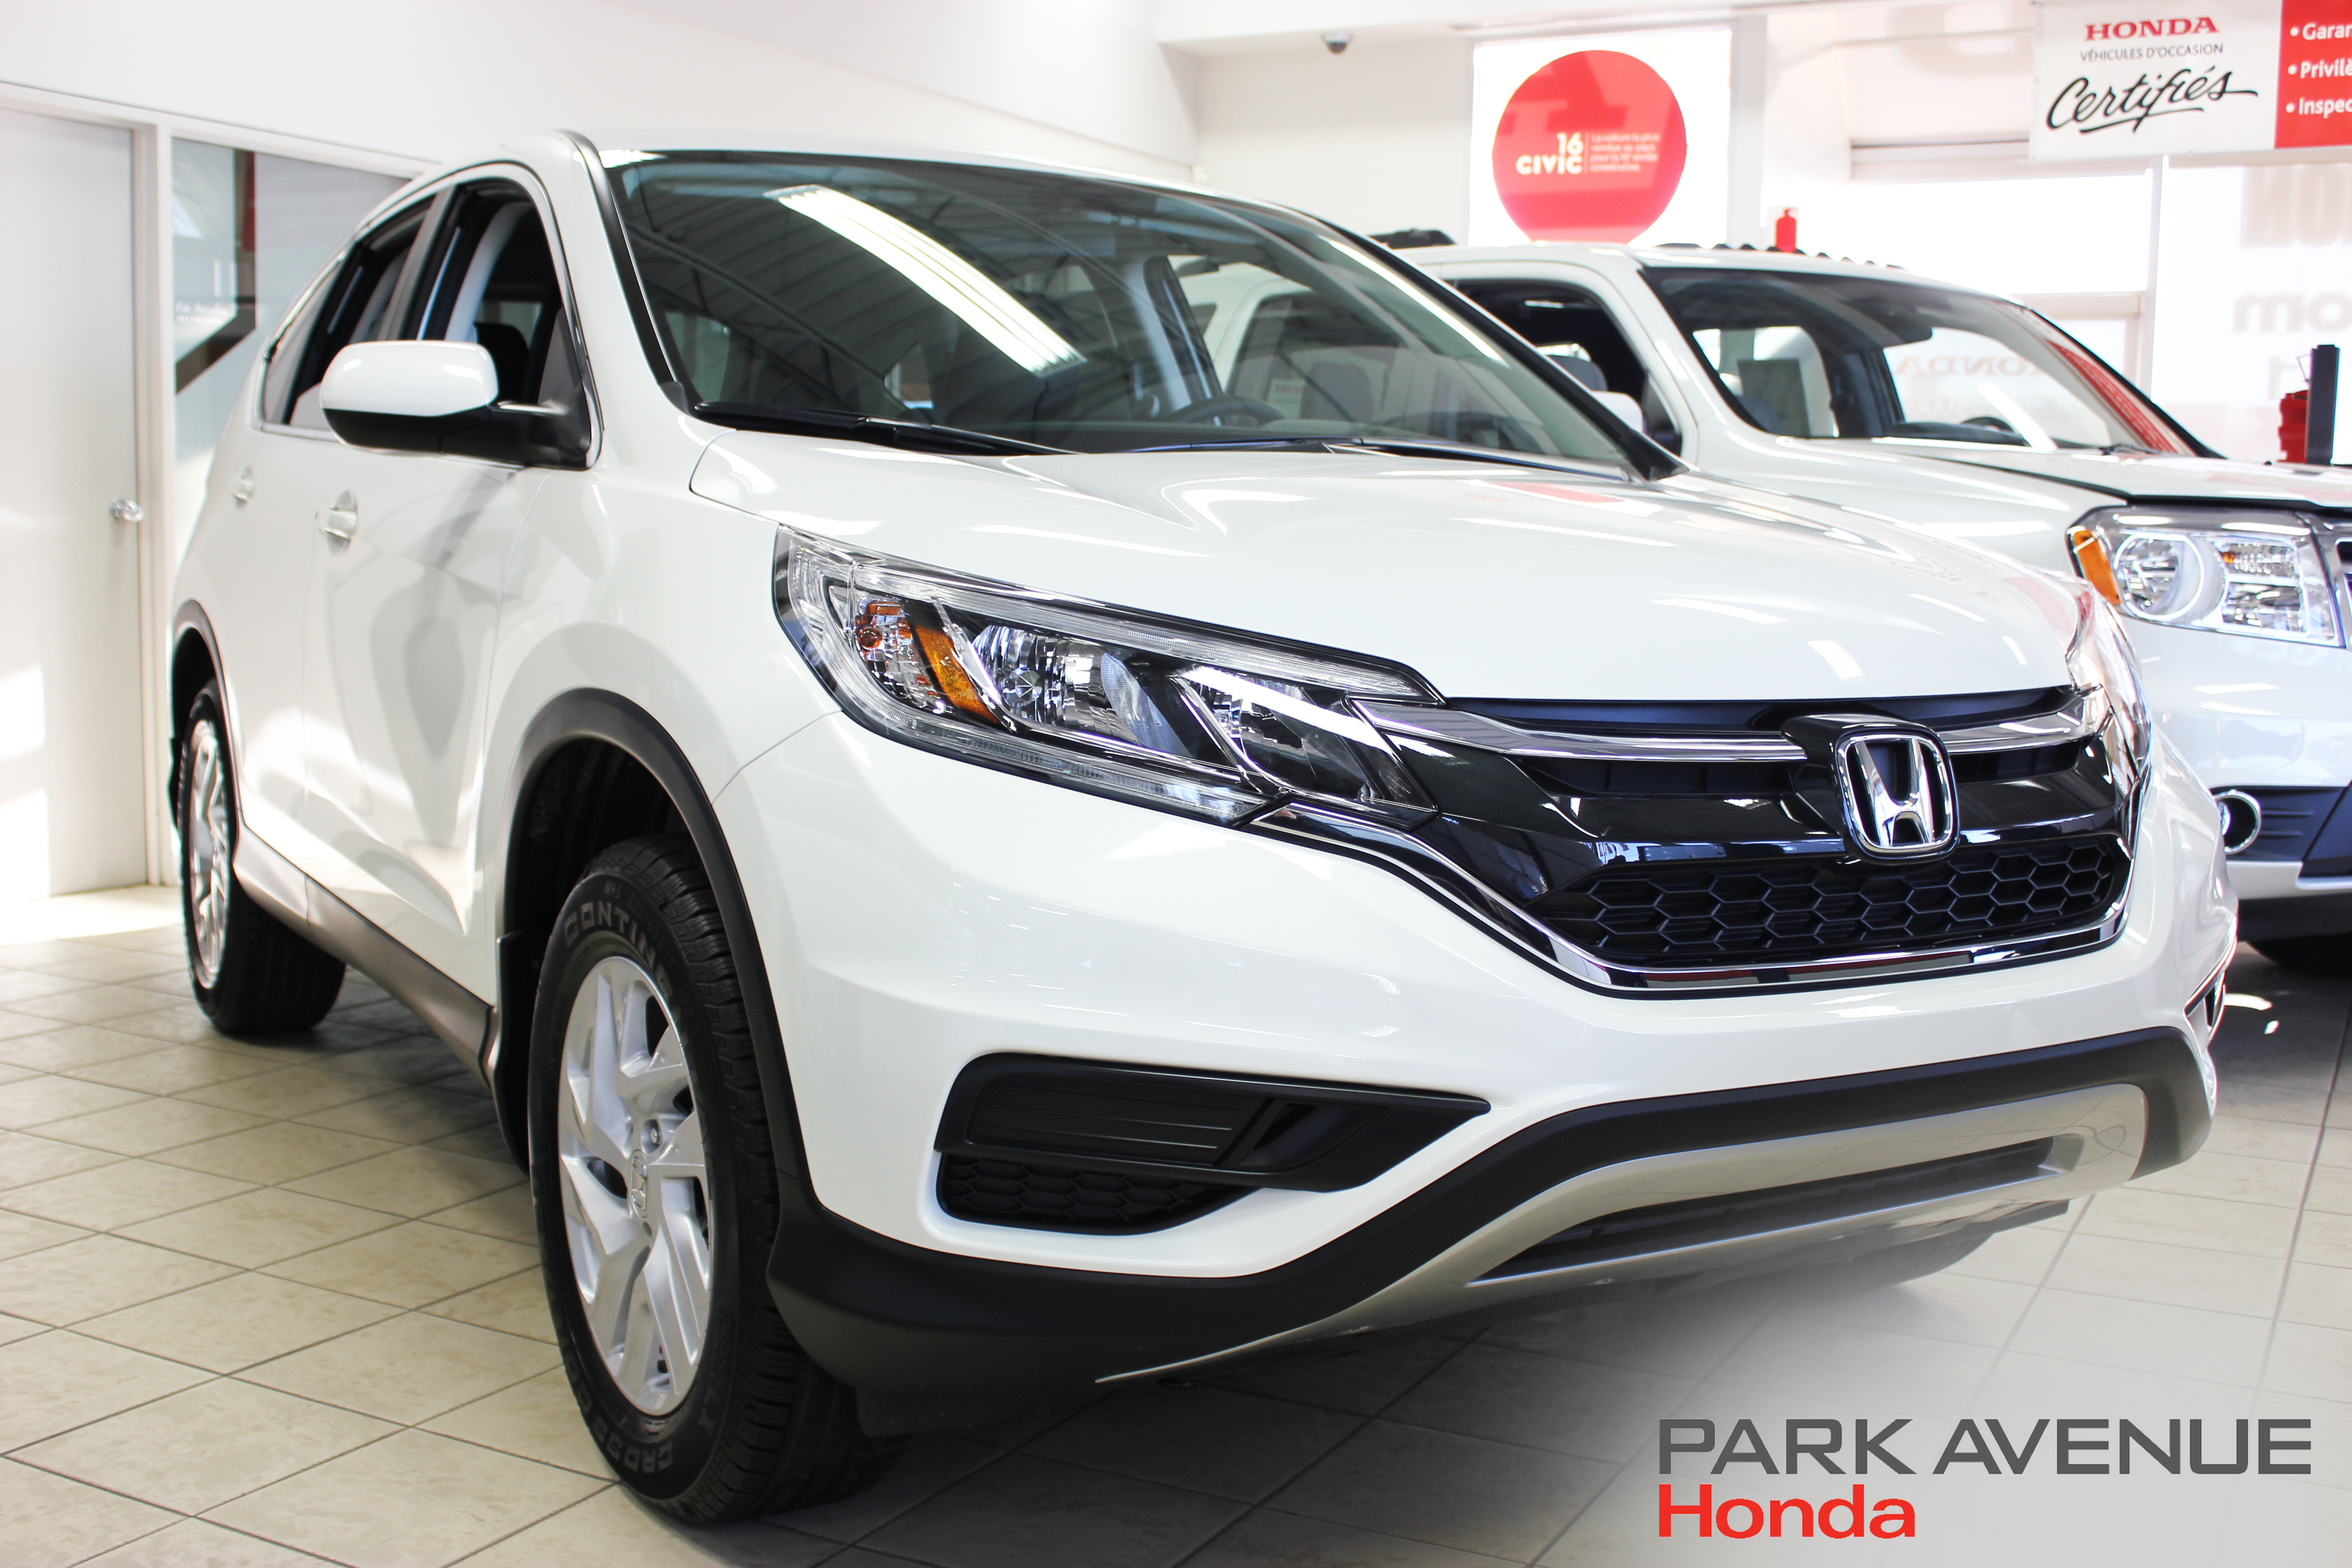 bar honda in efficiency v en newsnext value that for crv fourmillionth newslist with vehicle of hr release cr and increases performance fun fuel canada milestone major a safety the update passenger powertrain raises news reaches sold